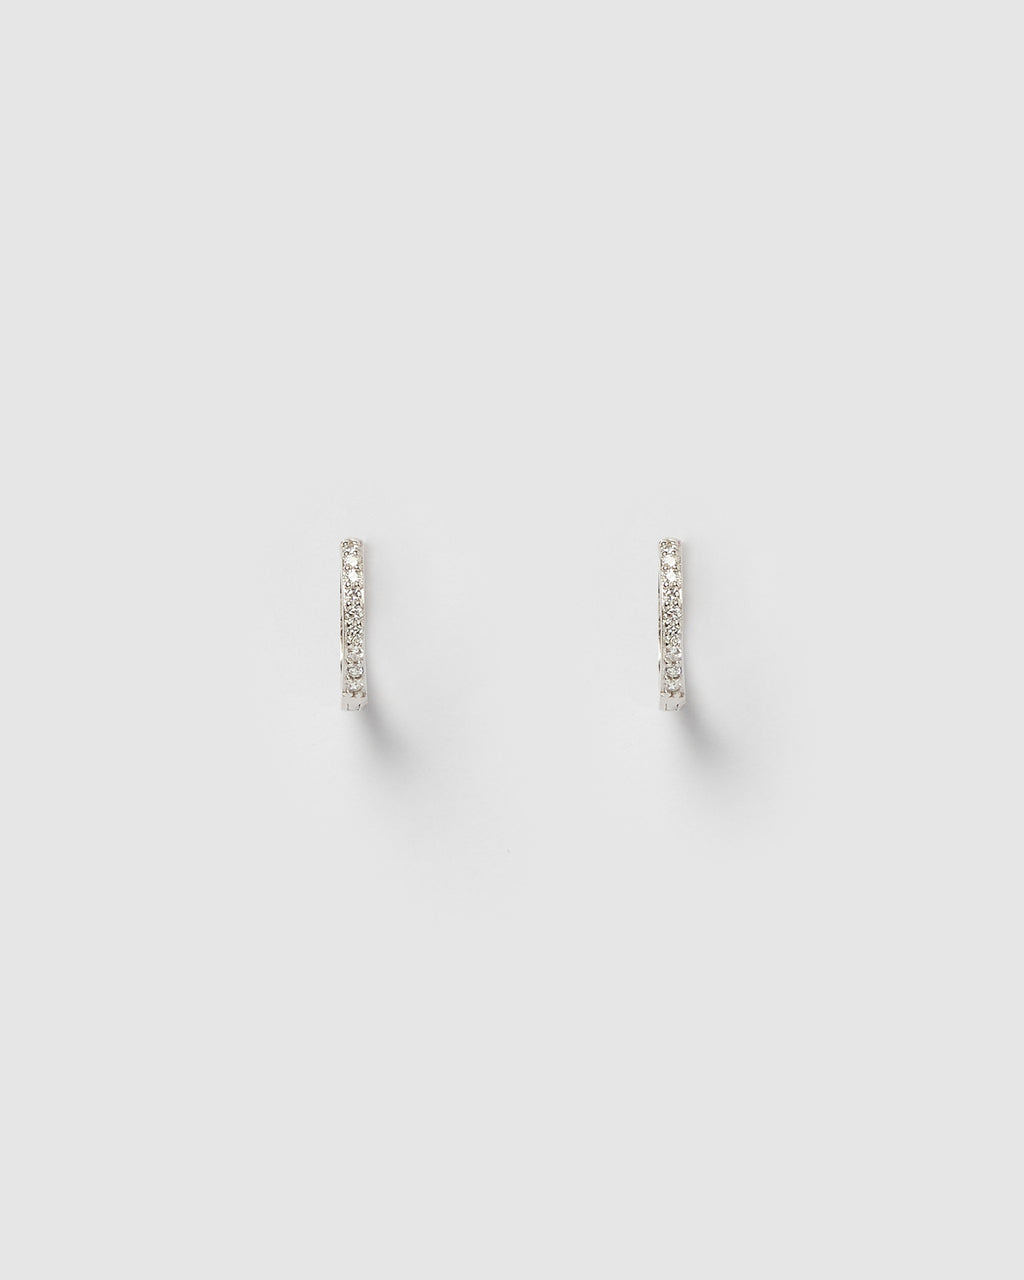 ** PRE ORDER** Izoa Remi Huggie Earrings Sterling Silver